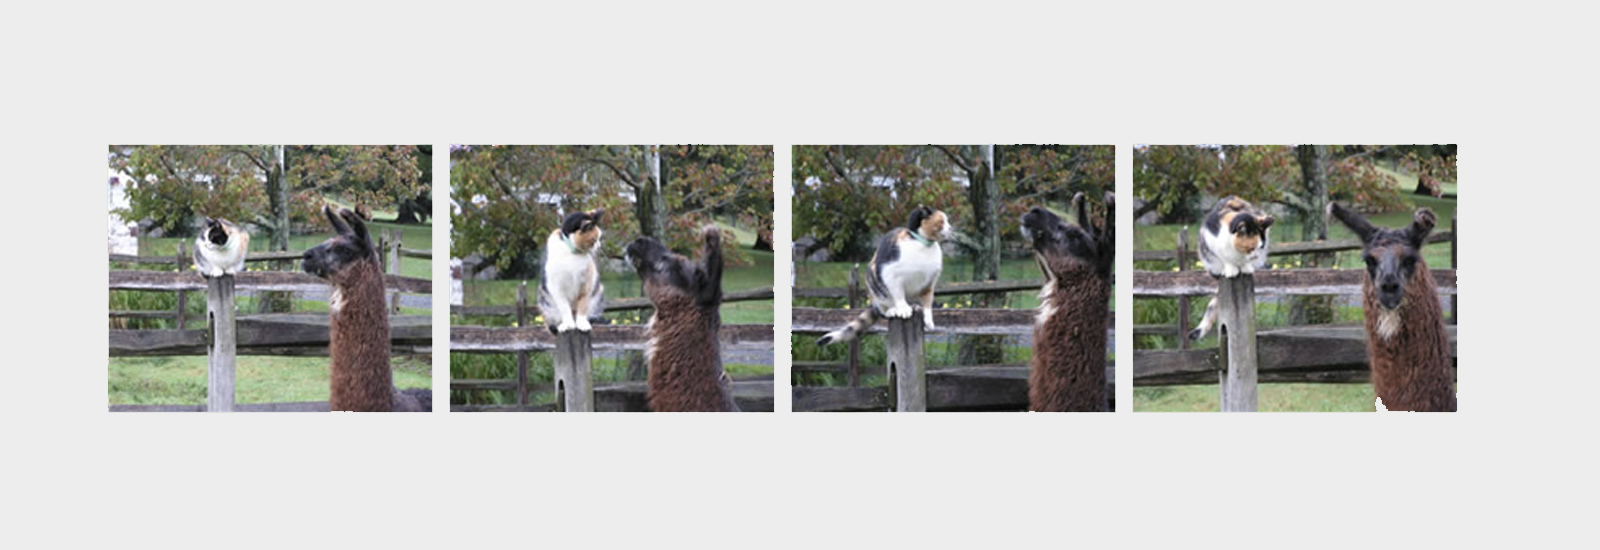 lama-and-cat-slider